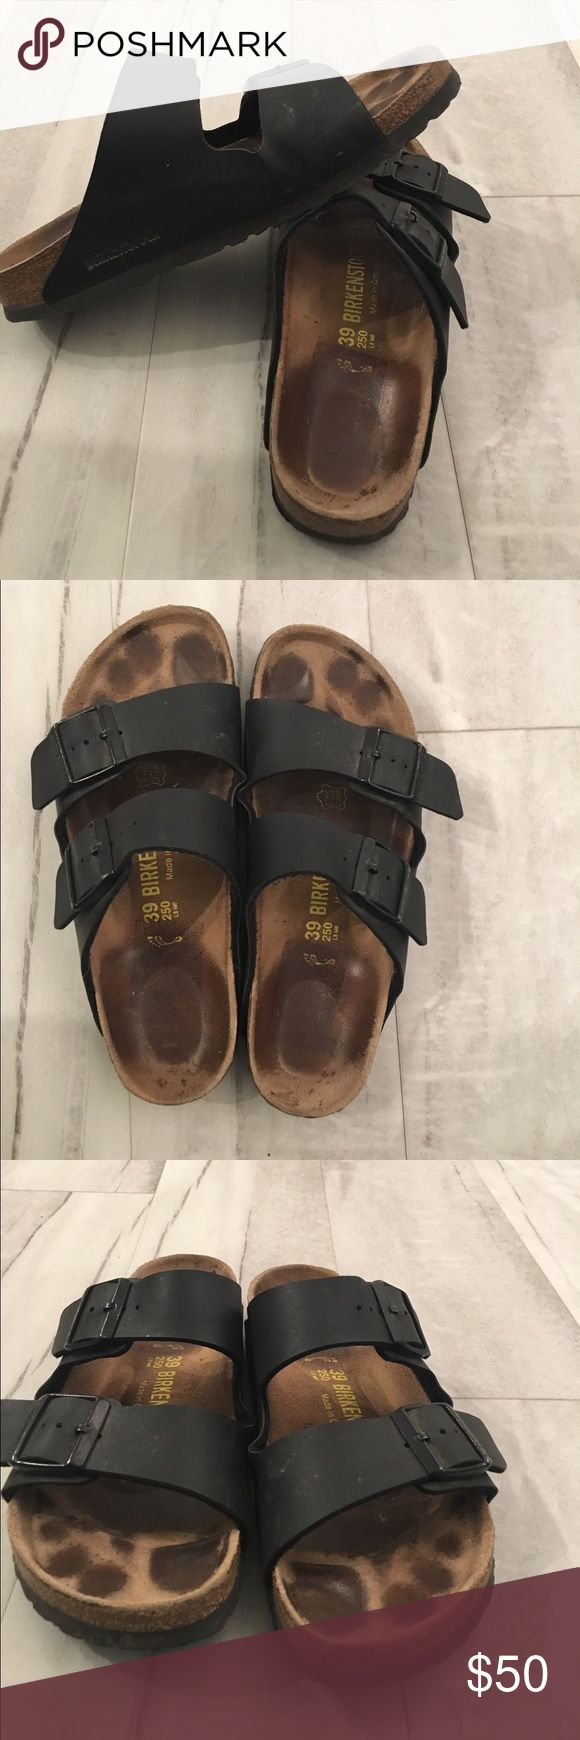 Black Birkenstock Sandals 39 / 8-8.5 Women's Black Birkenstock Sandler, size 39 which is an 8-8.5 (according to Birk website) in Women's. Love these shoes, selling for a friend. If they were my size I'd keep them!!! Birkenstock Shoes Sandals